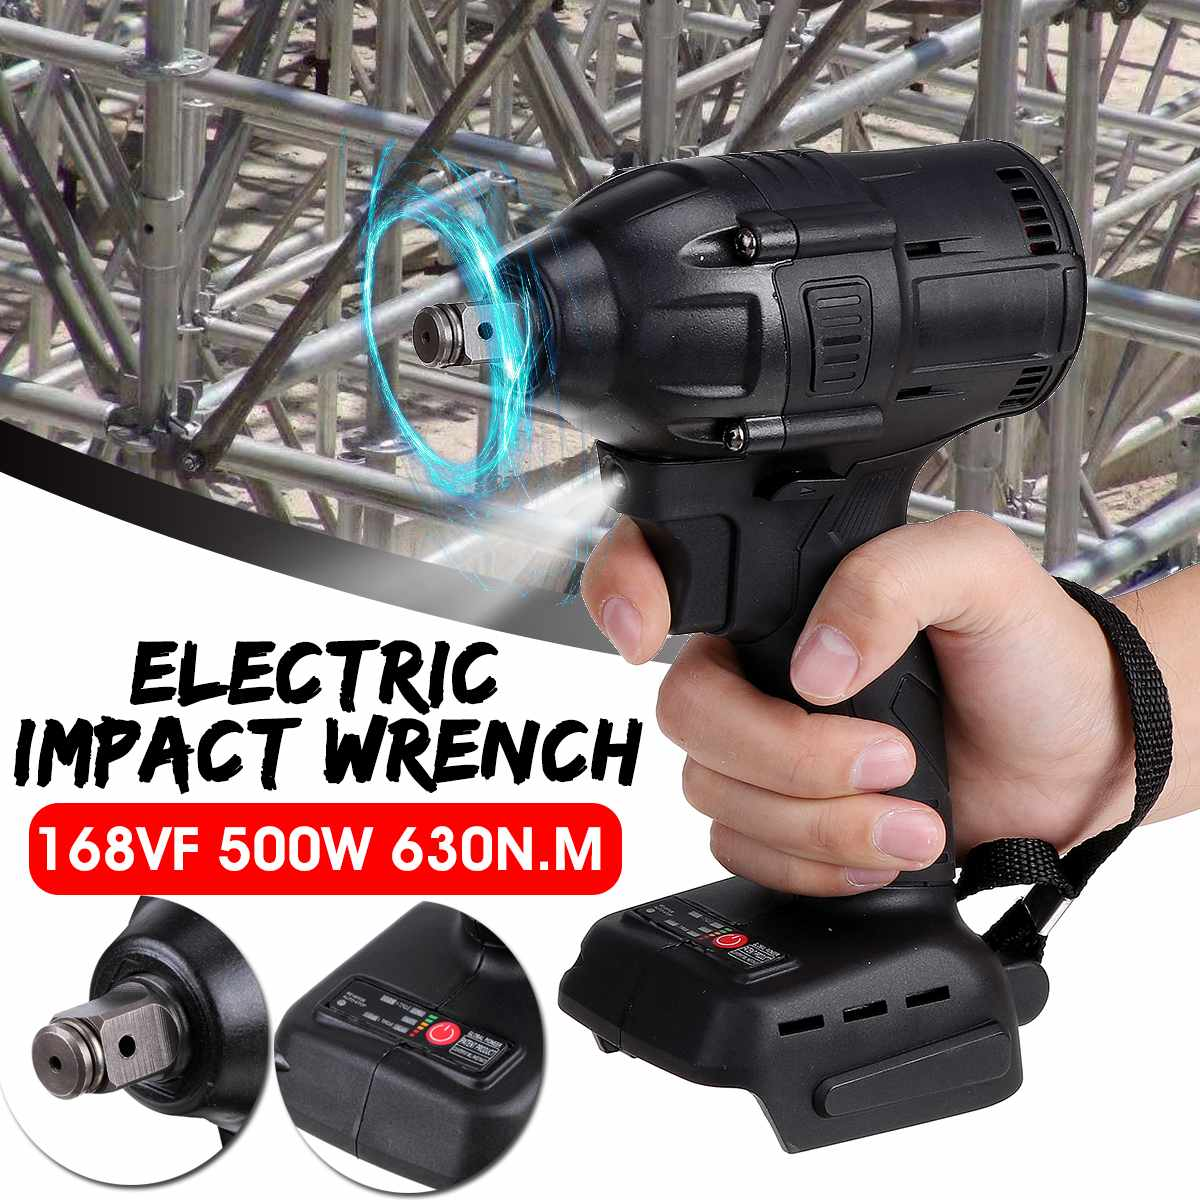 Doersupp Wrench Cordless Driver Makita For Impact Battery 18V Wrench 2 18V Li Ion  500W Electric 1 Replacement 630N M